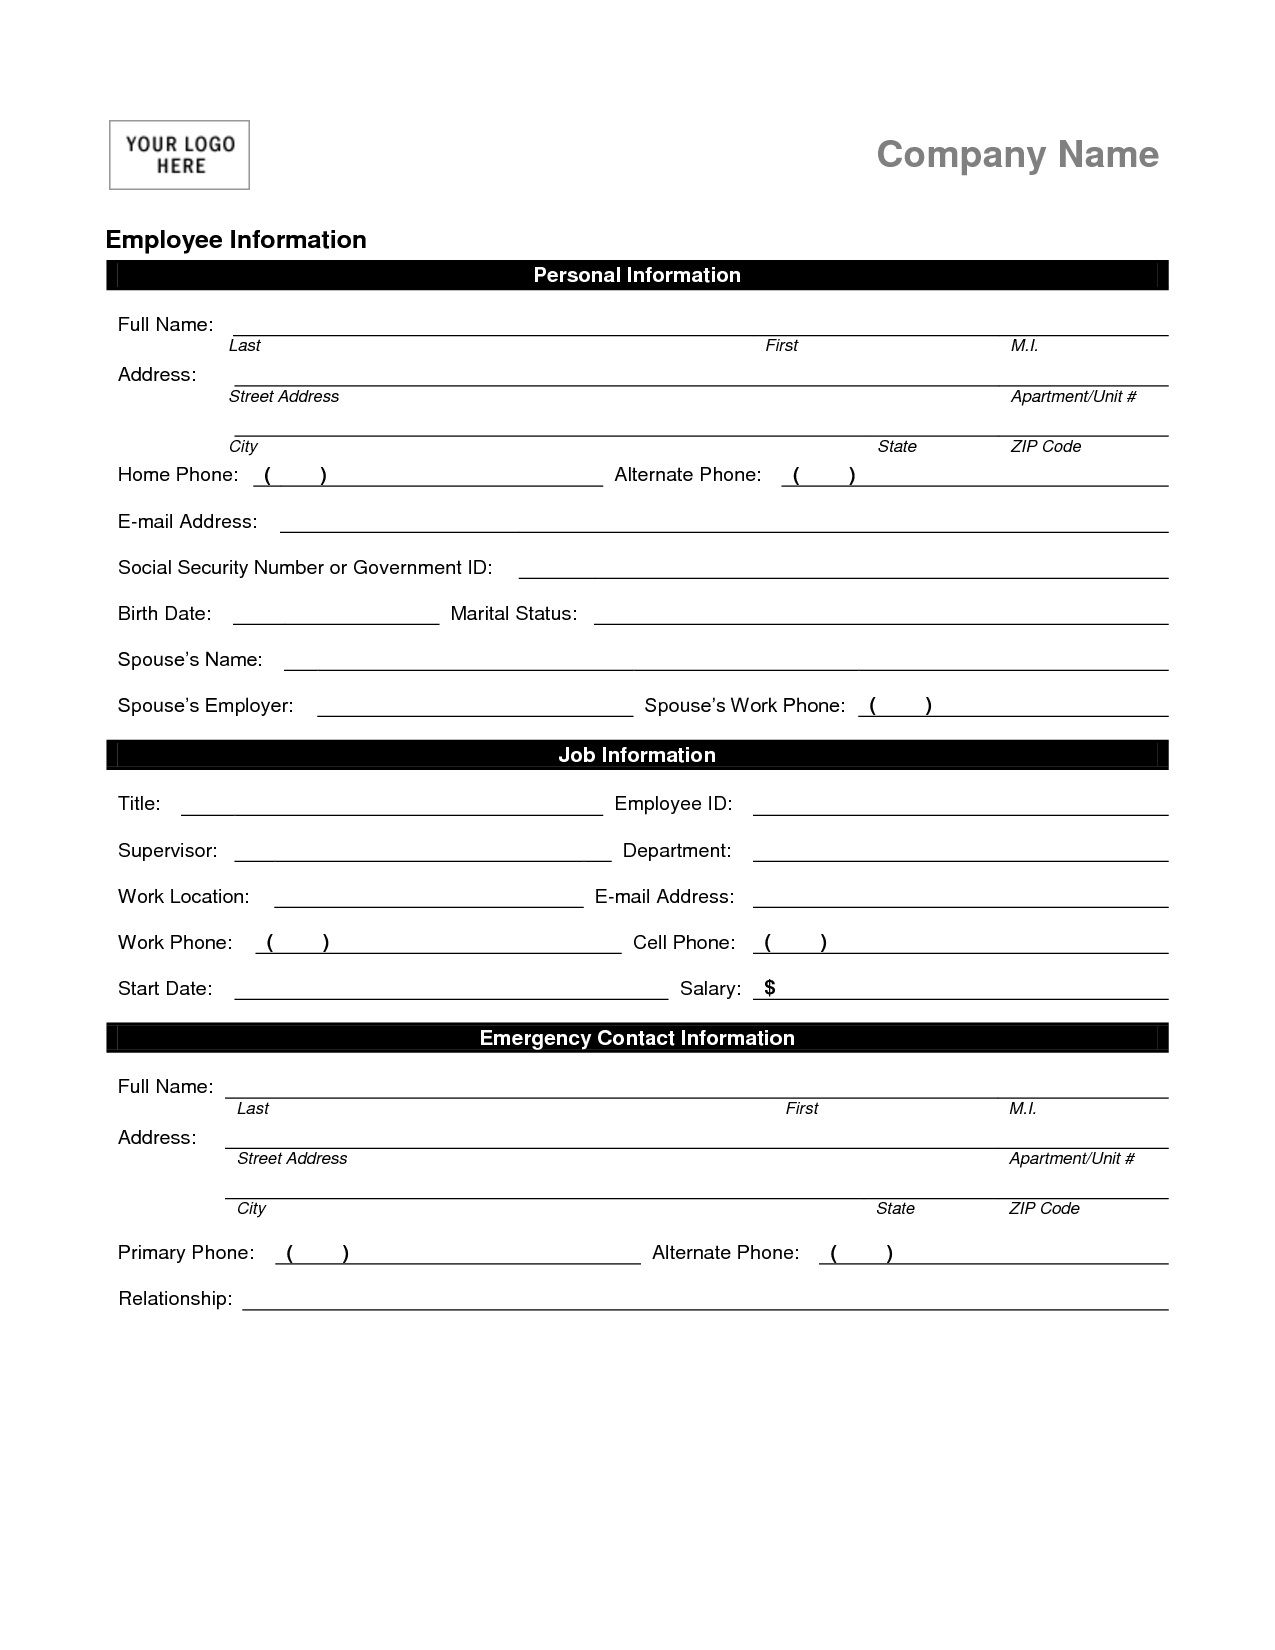 000 Staggering Employment Information Form Template Image  Employee Registration Free Download Application Malaysia WordFull